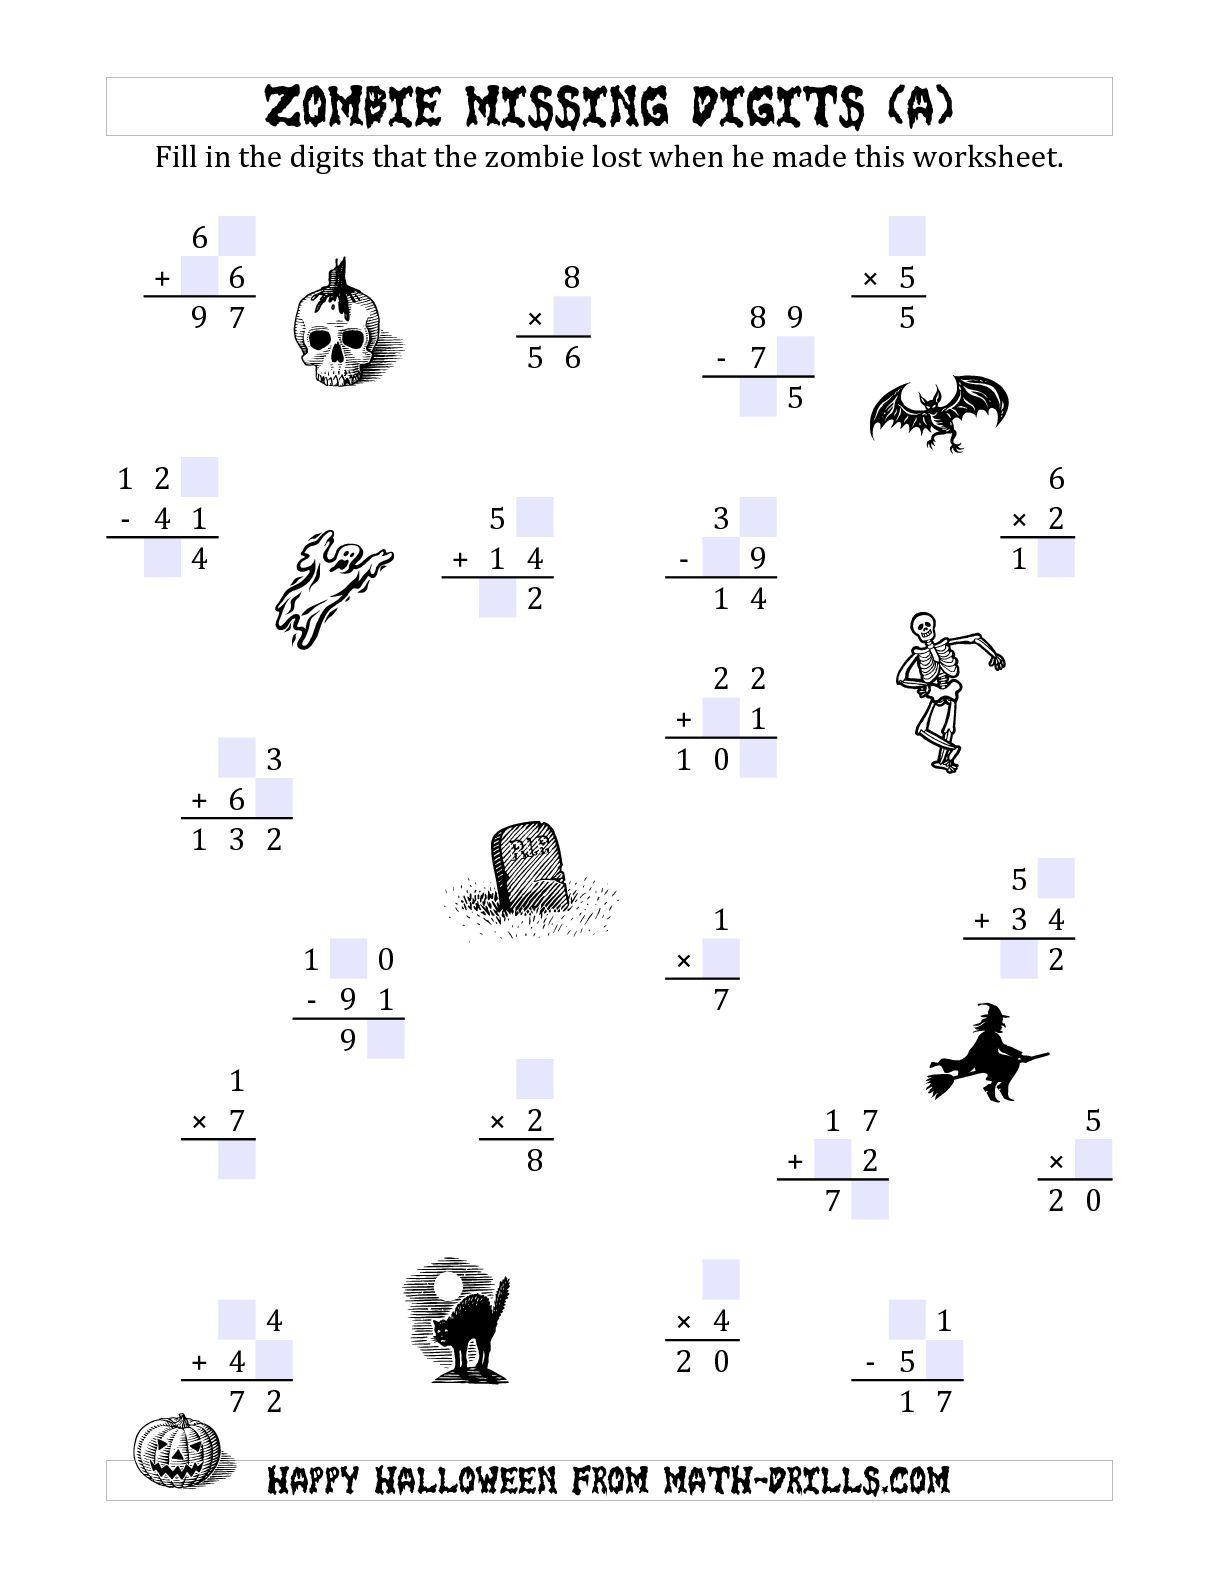 The Zombie Missing Digits A Math Worksheet From The